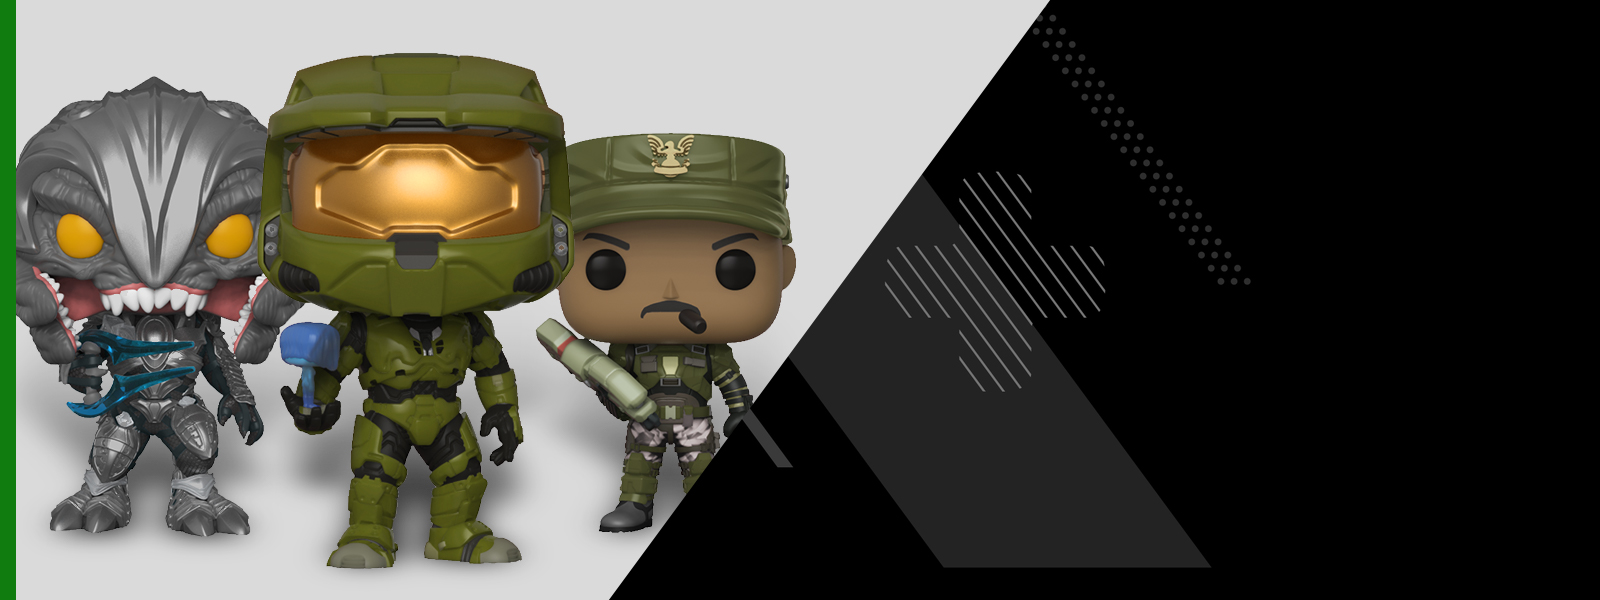 Xbox merchandise - Halo Avatars - Master Chief